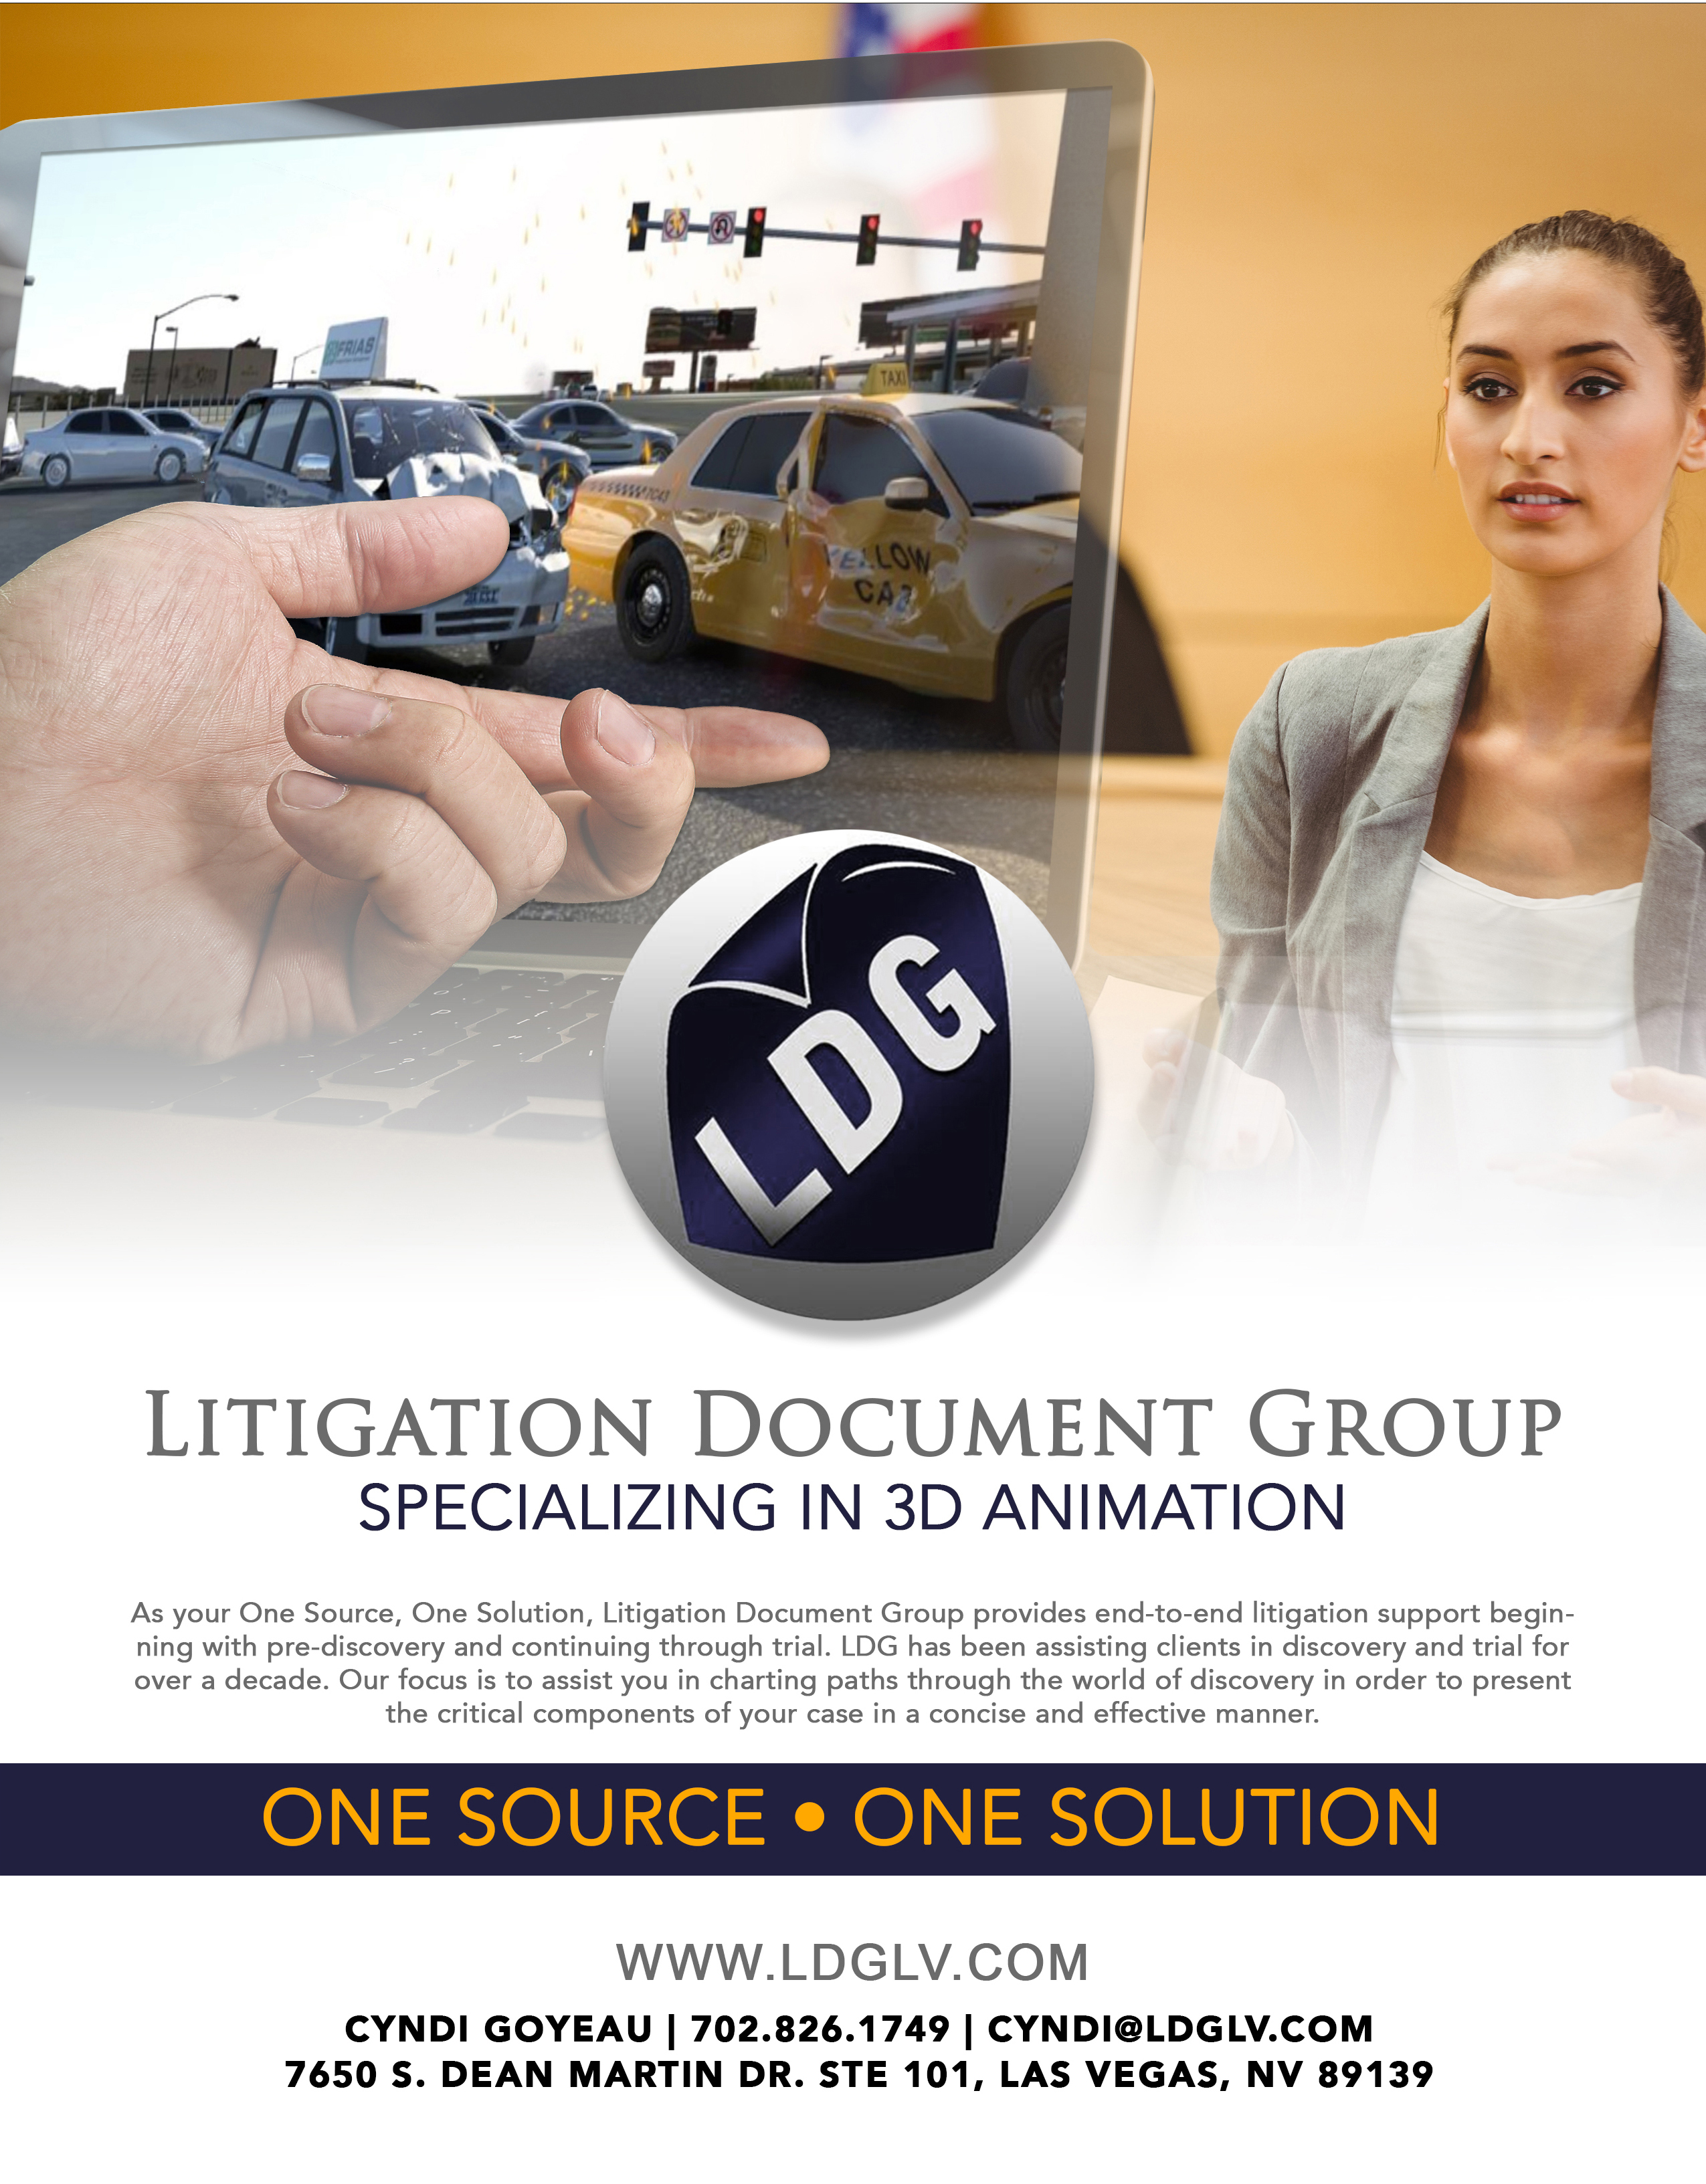 3D Animation - Litigation Document Group